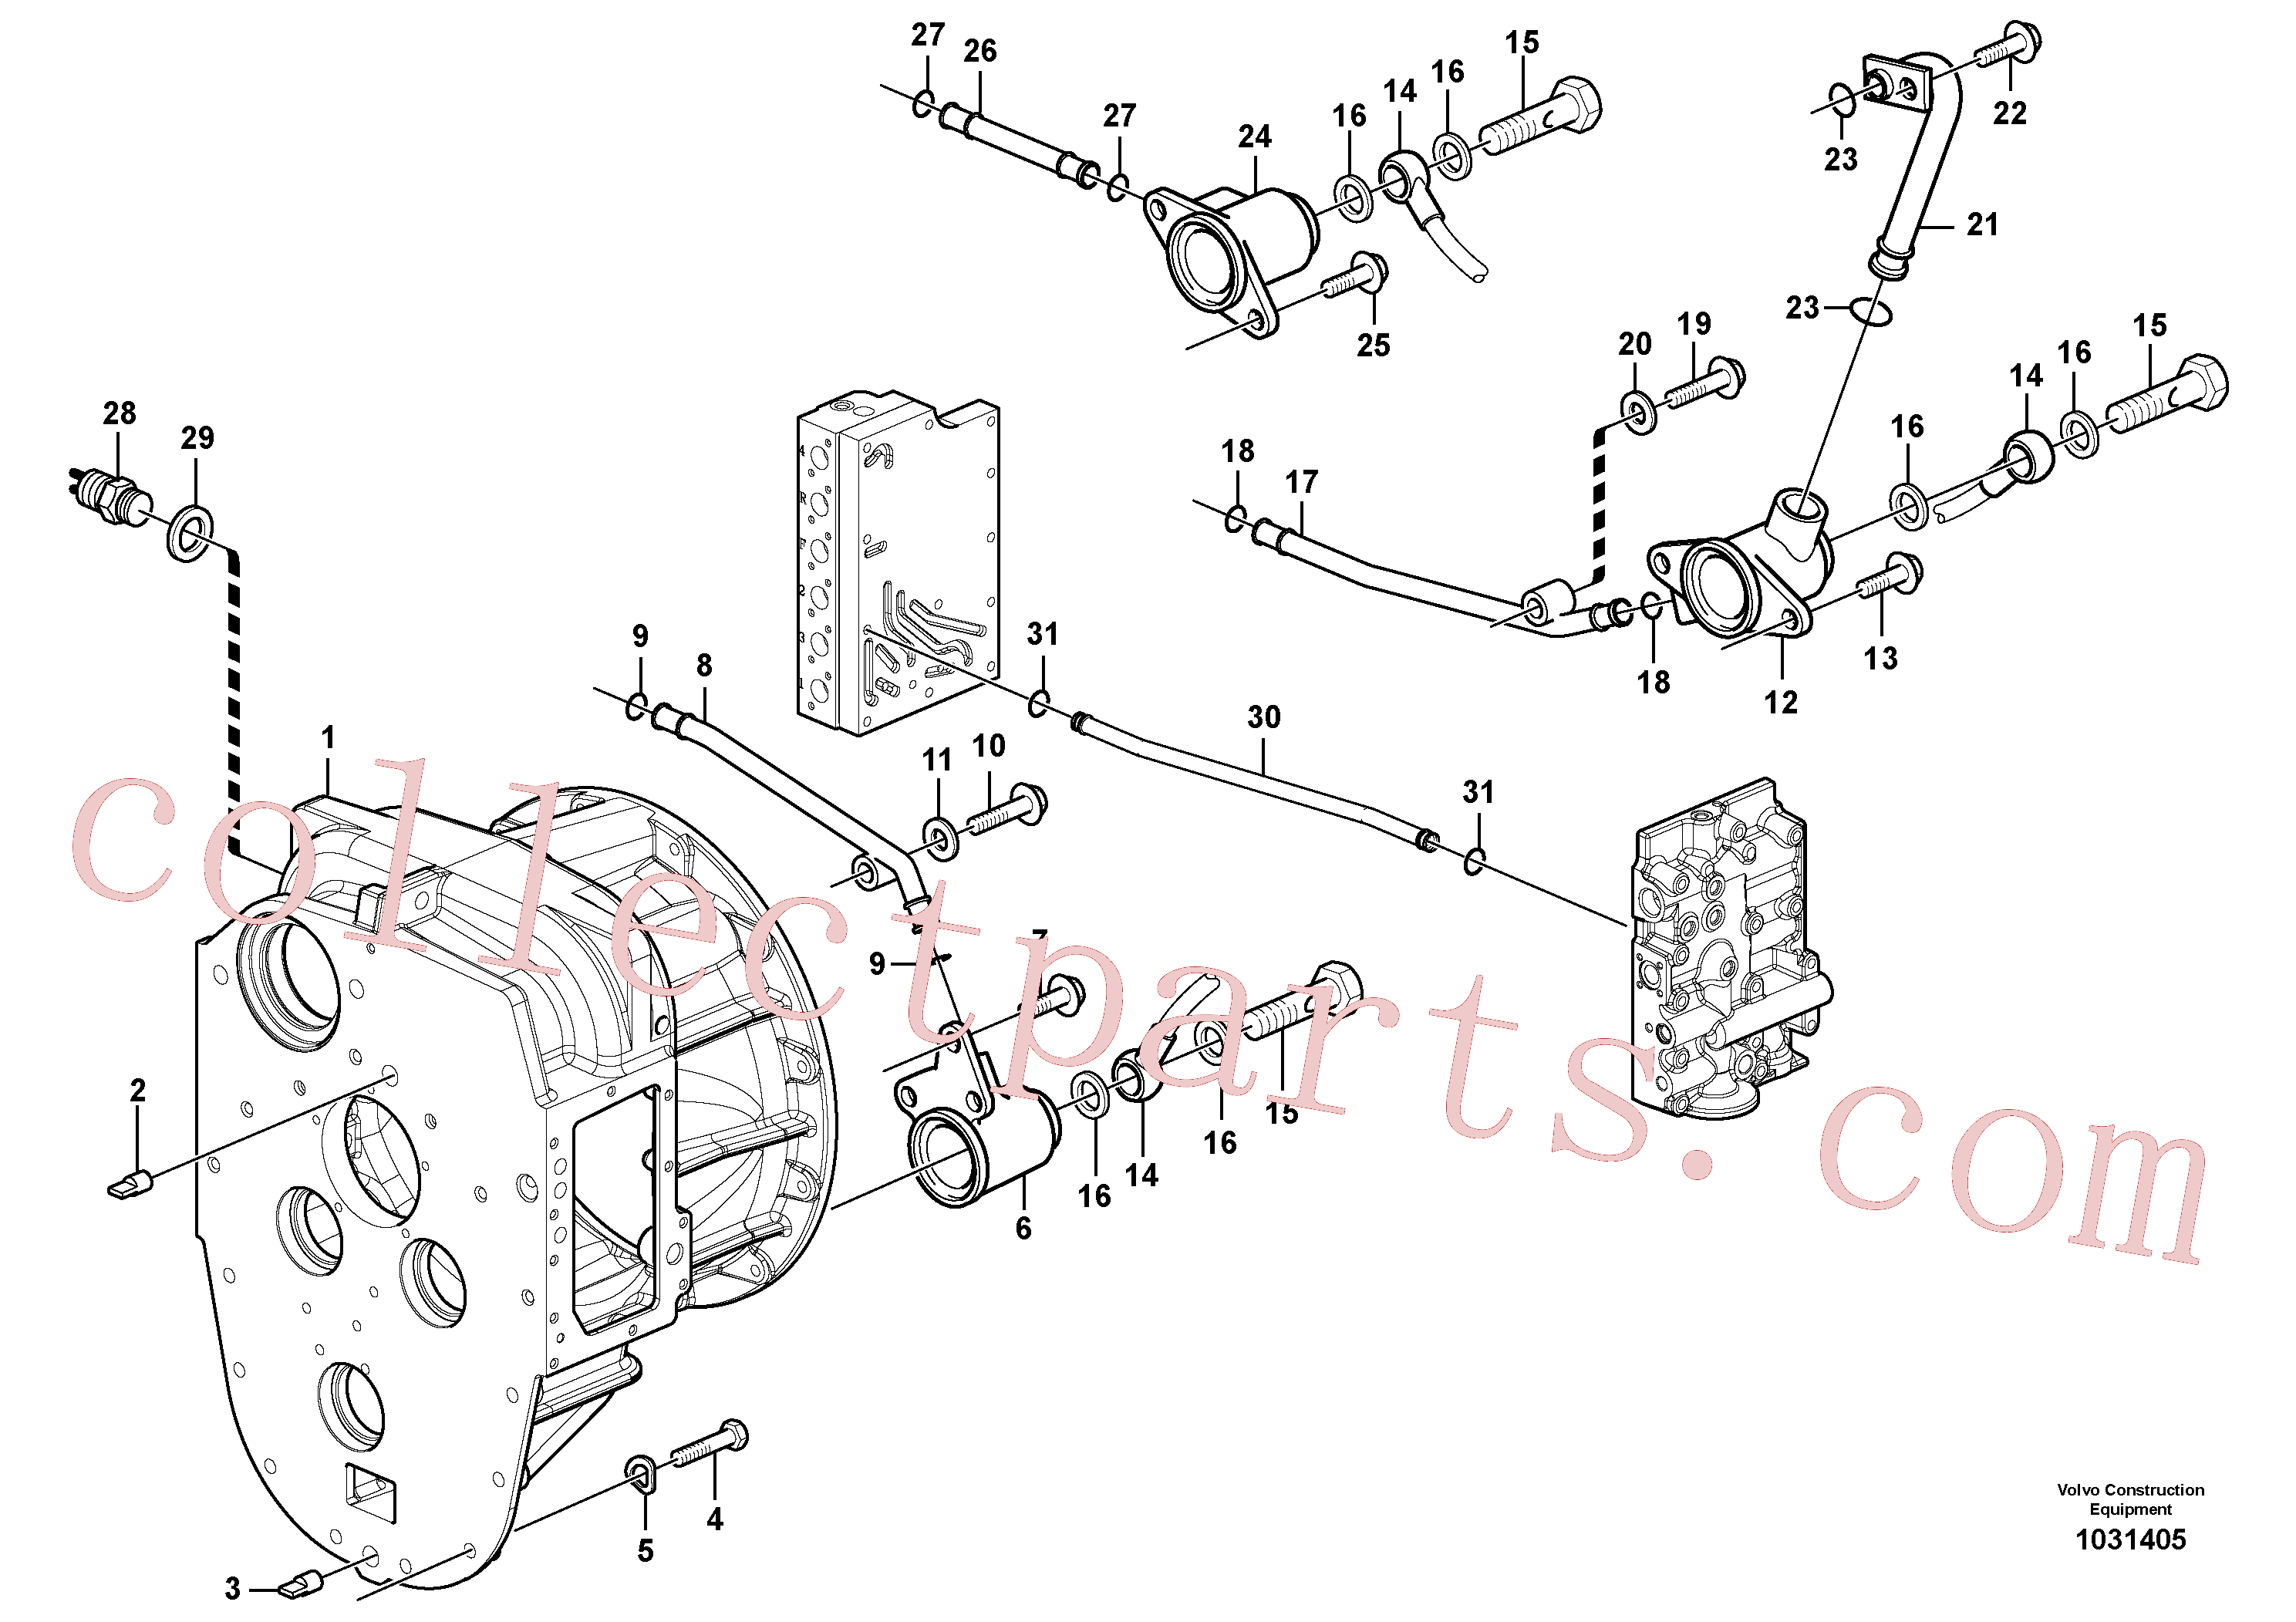 VOE947624 for Volvo Converter housing with fitting parts(1031405 assembly)